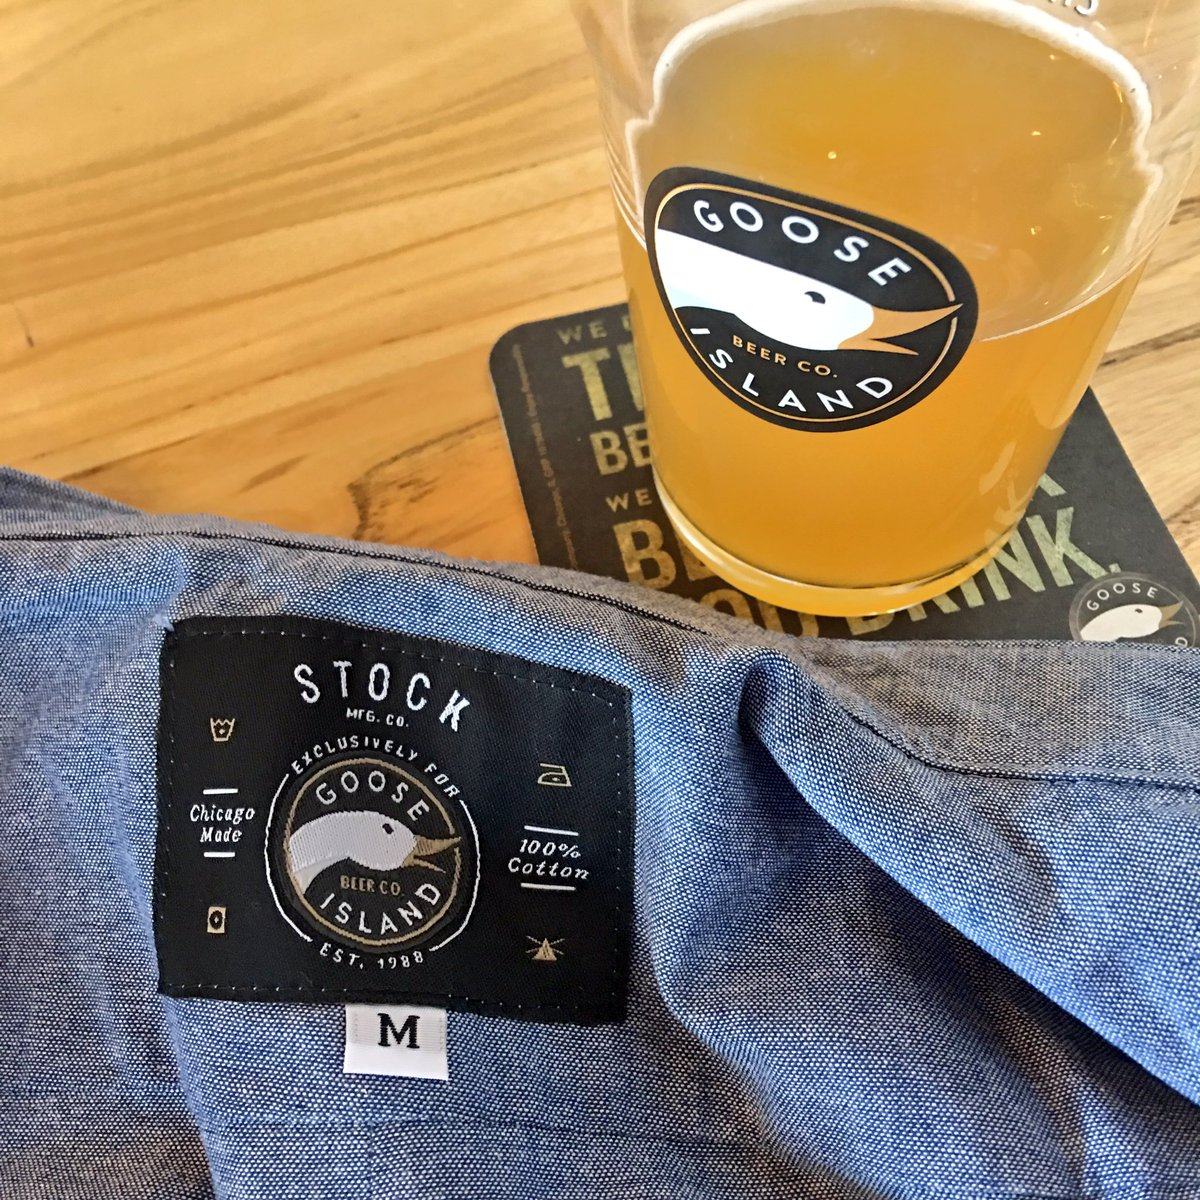 f5285baf50 Goose Island Beer Co and Stock Mfg. Co.